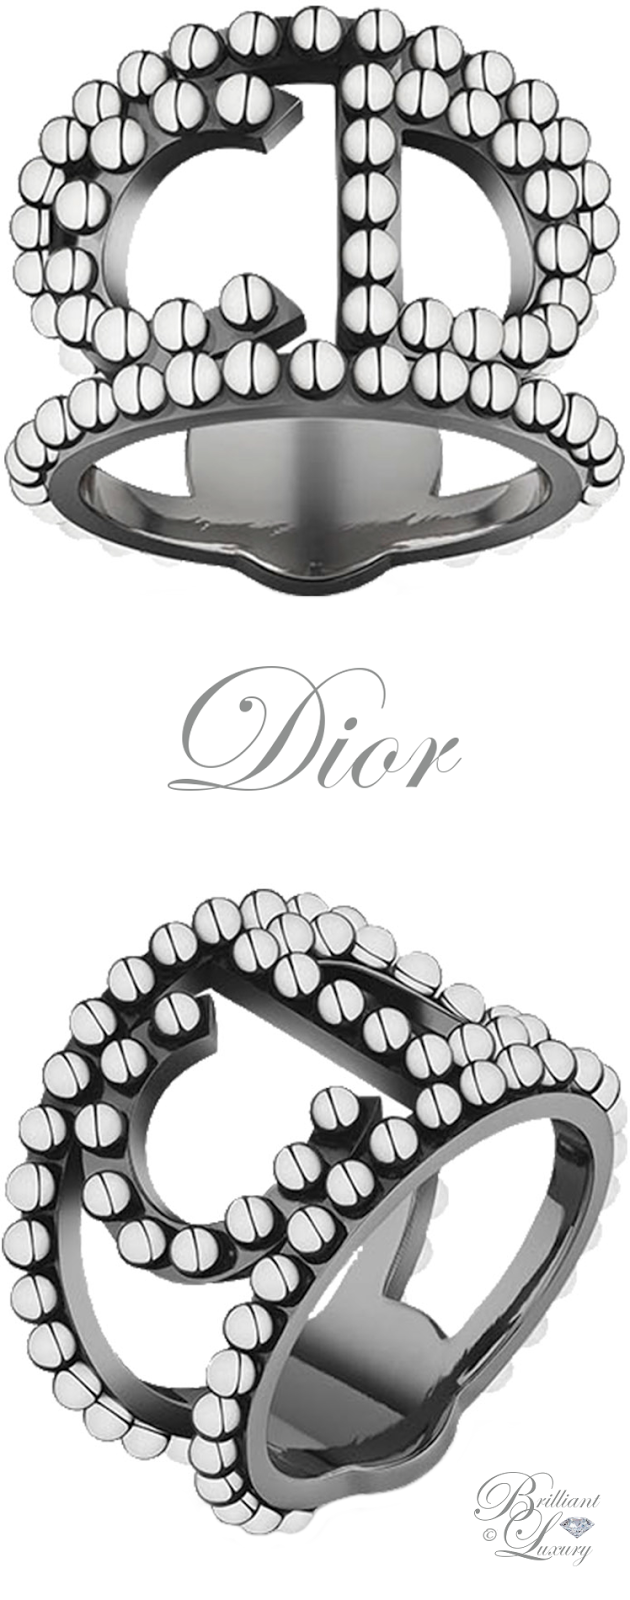 Brilliant Luxury ♦ Dior Your Dior Ring